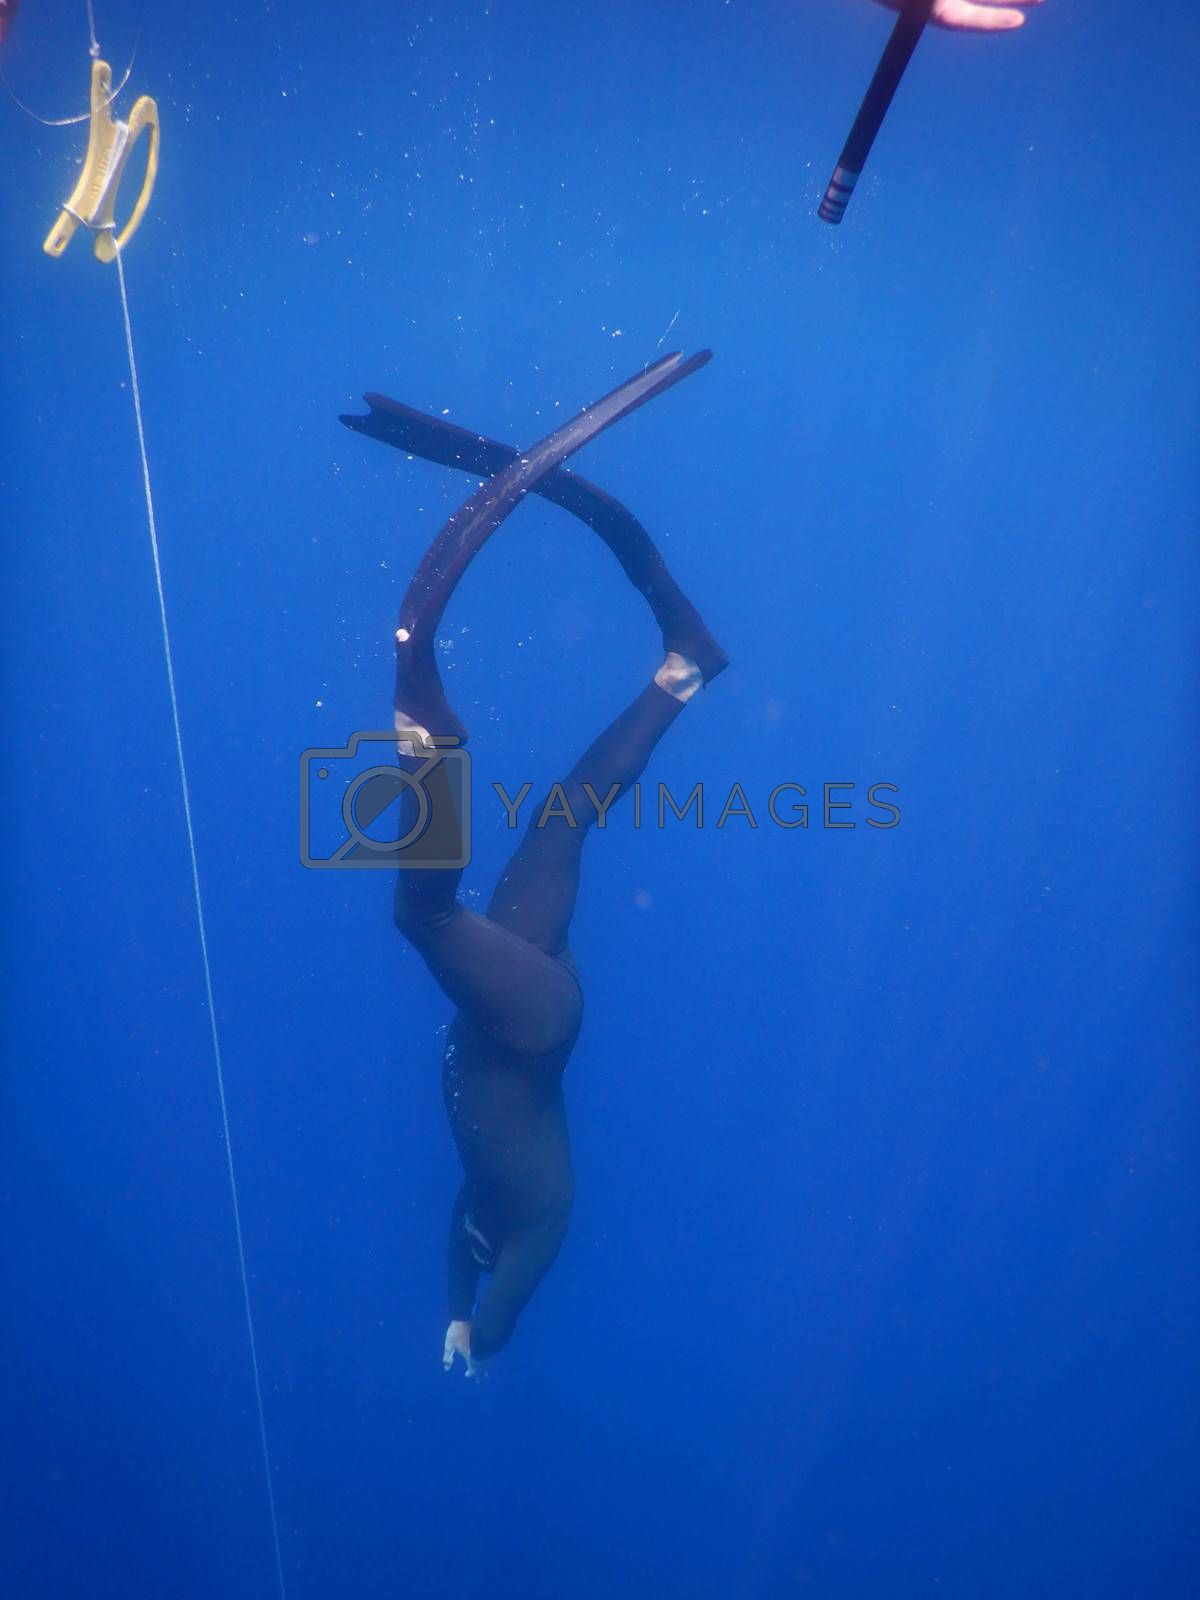 Royalty free image of Free diving along the cable by cosca